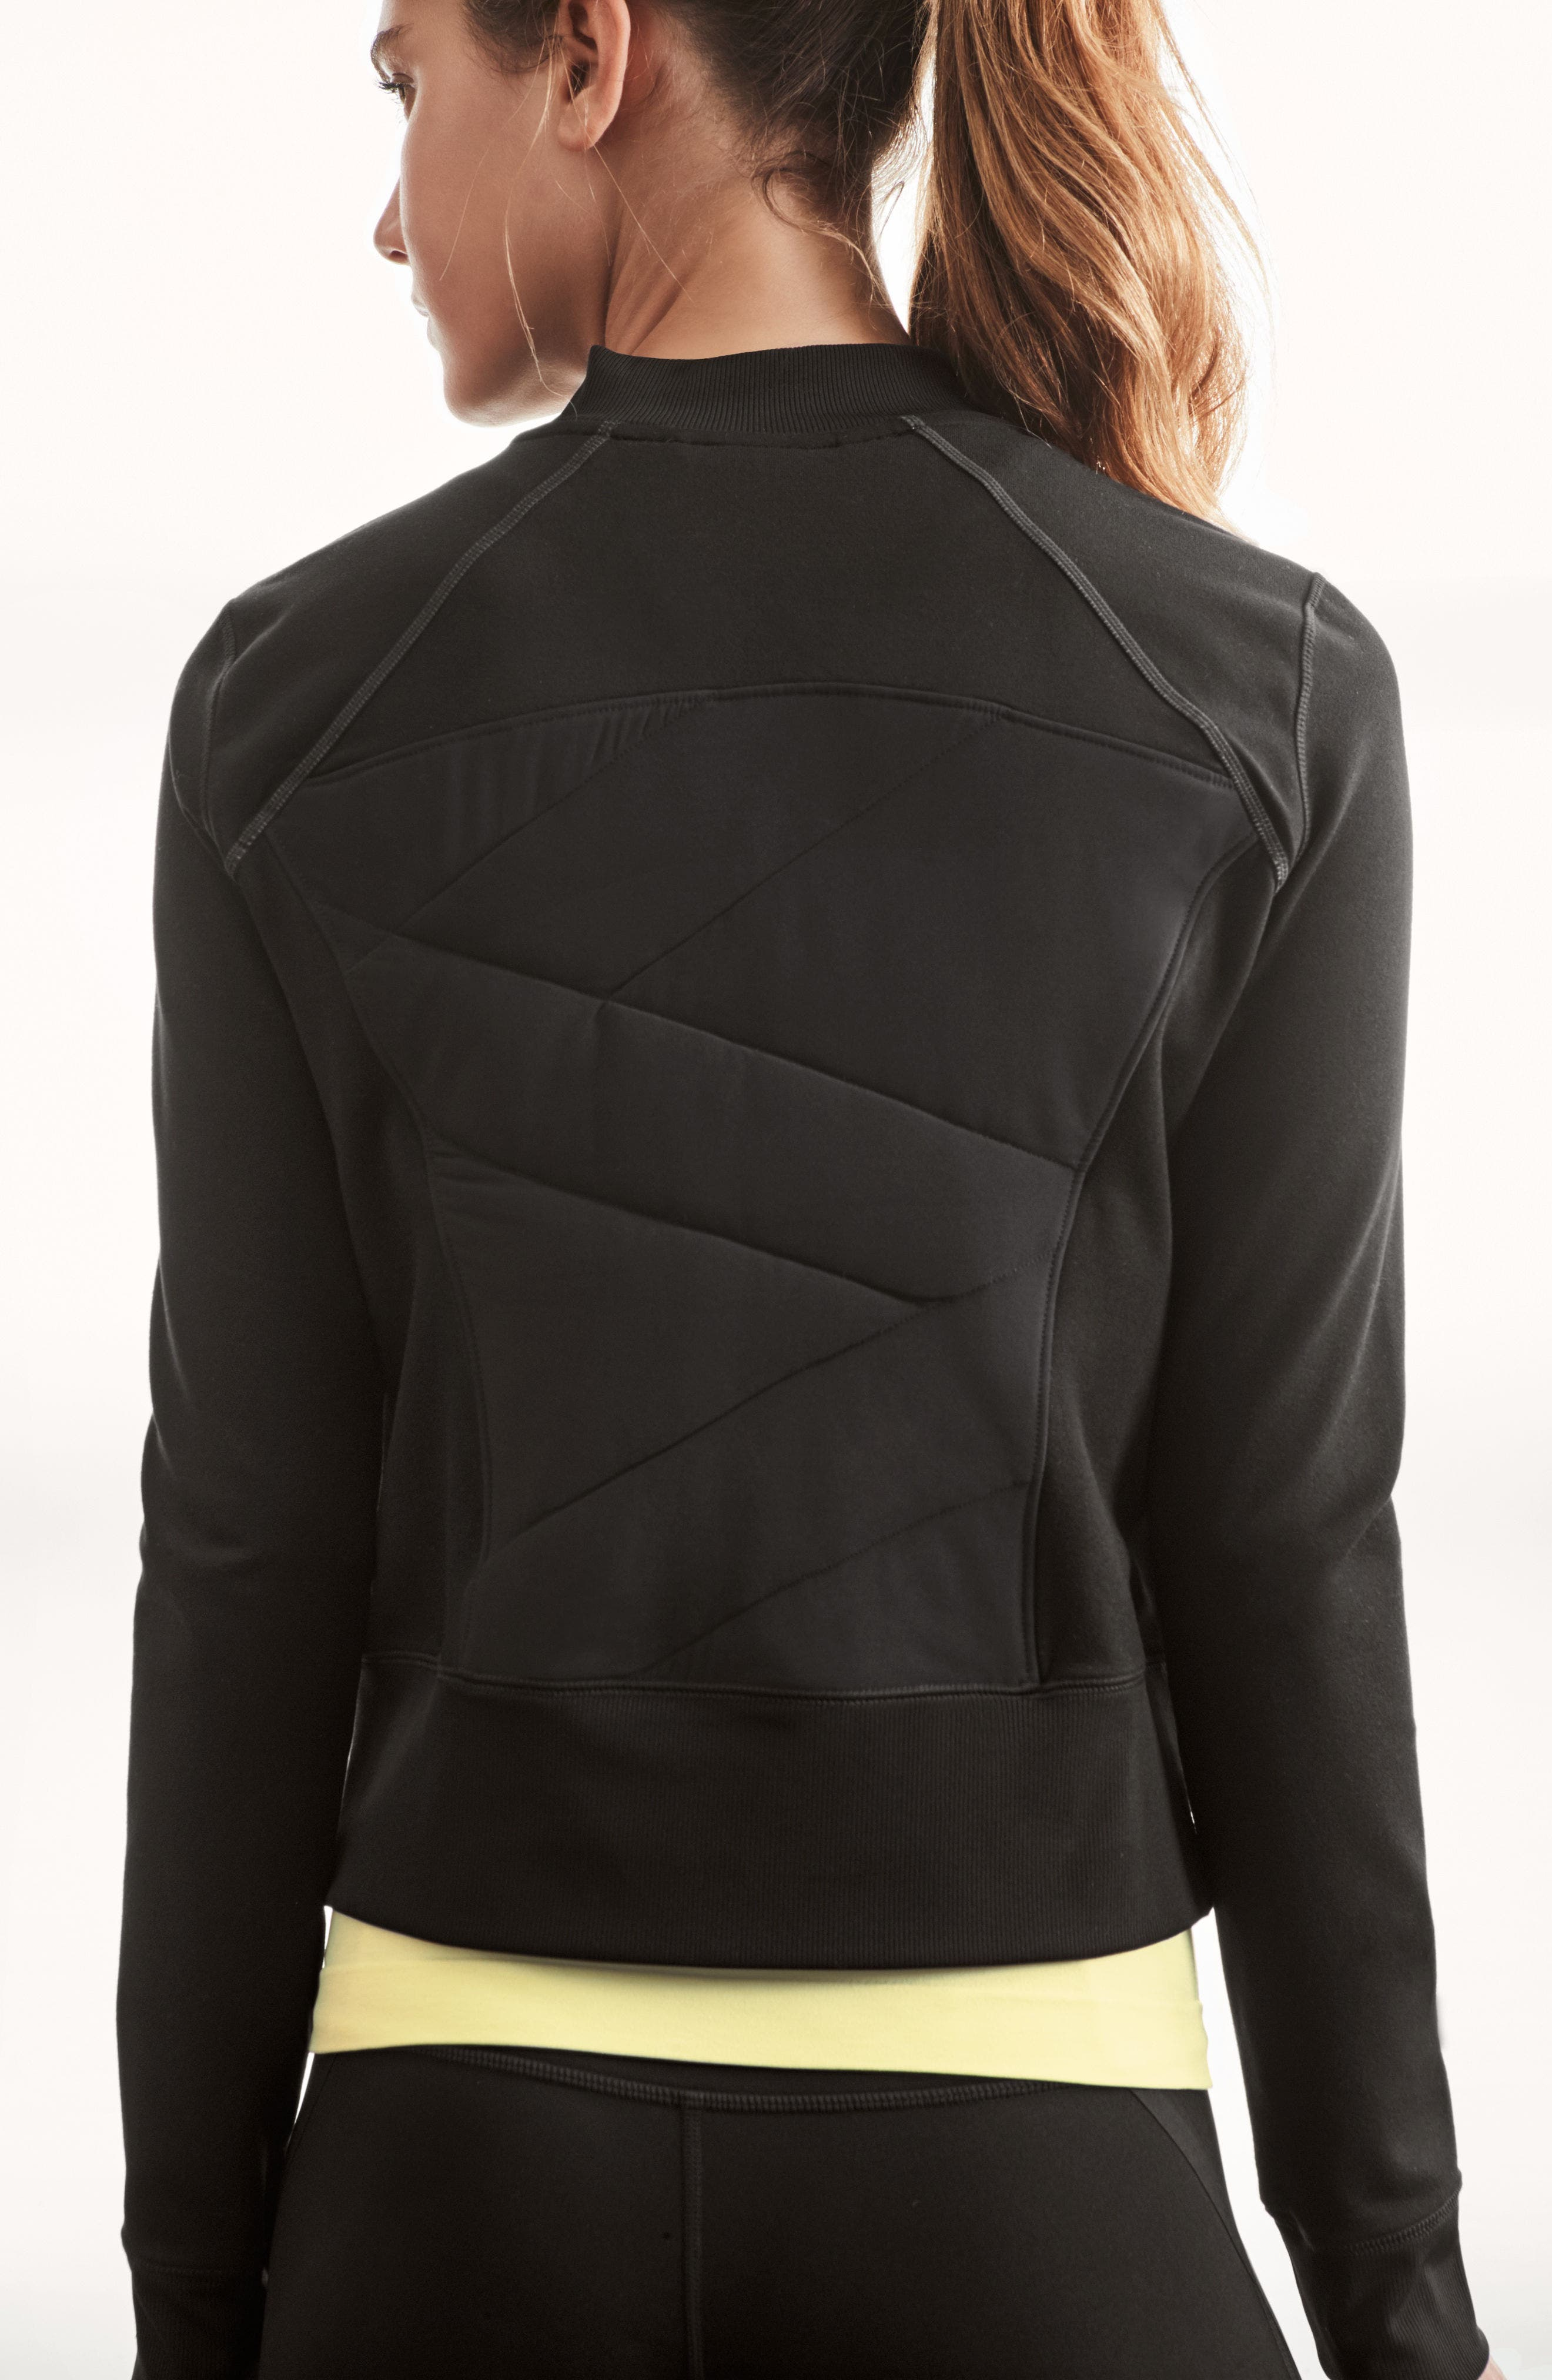 Wear It Out Bomber Jacket,                             Alternate thumbnail 4, color,